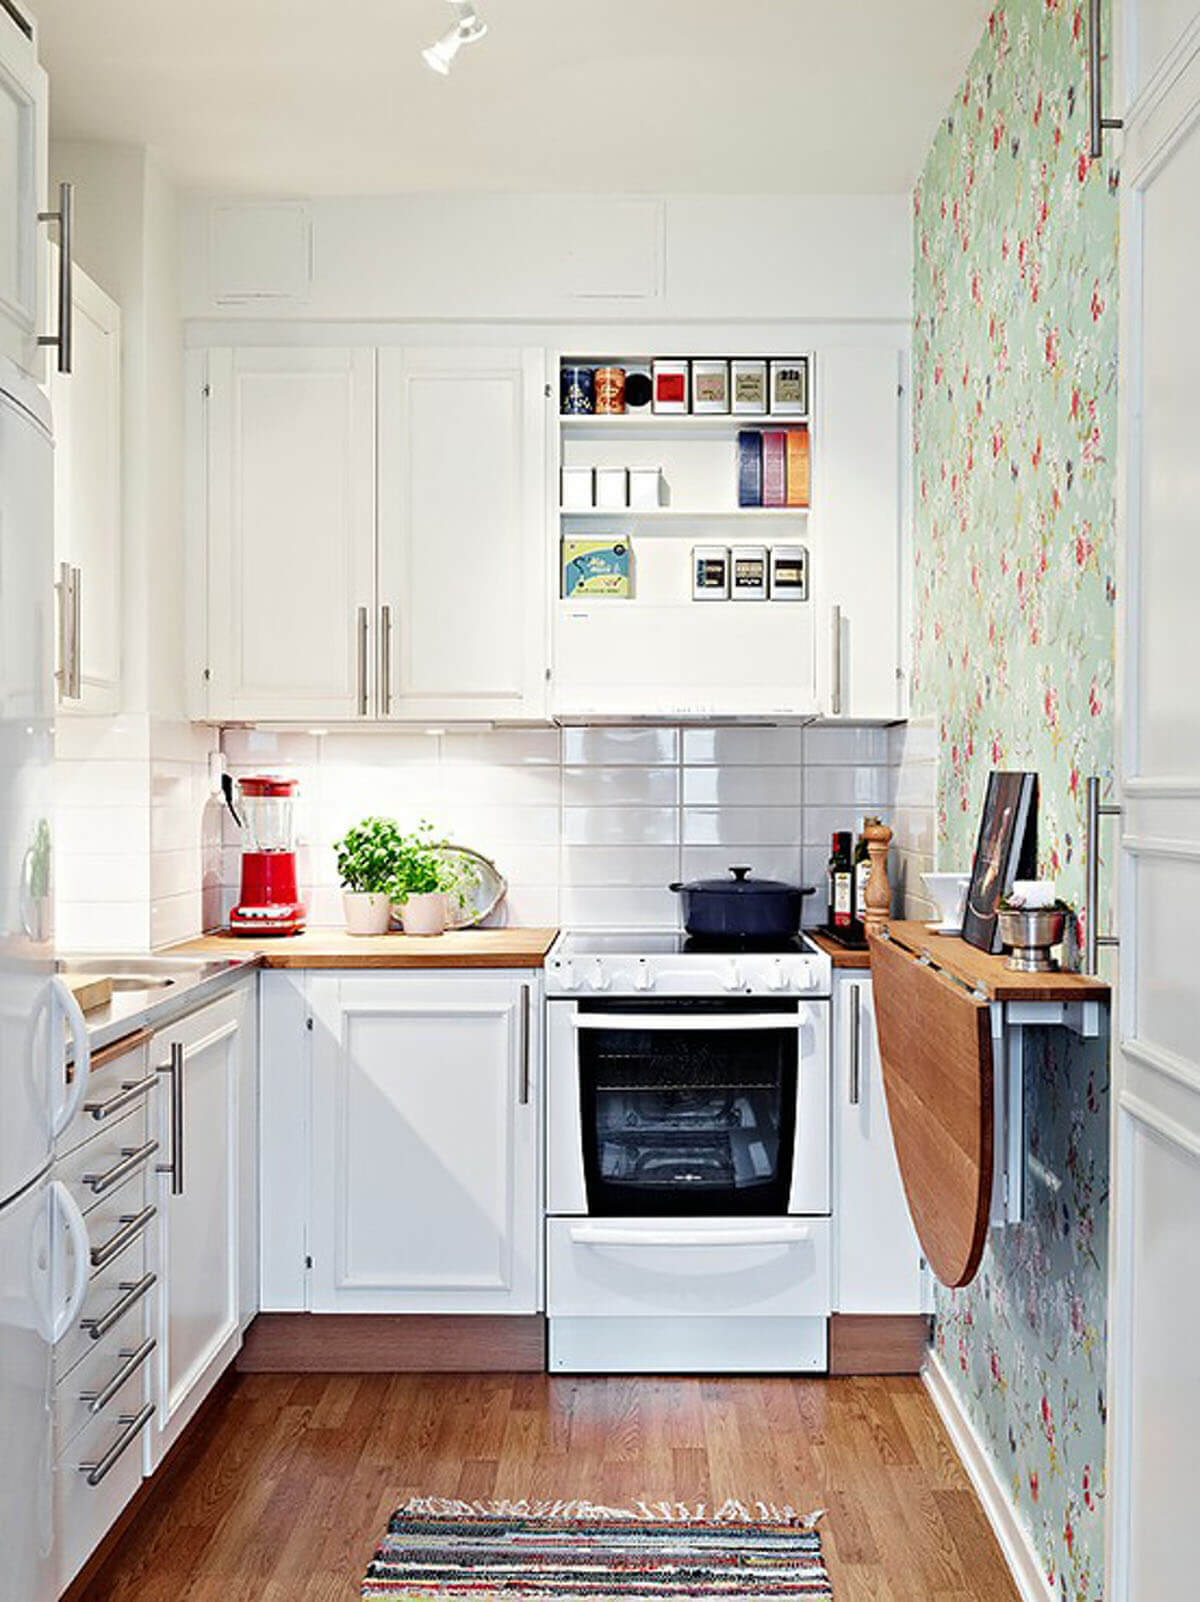 30 Best Small Kitchen Decor and Design Ideas for 2018 Small Kitchen Wallpaper on family room wallpaper, lightning wallpaper, small orange living room, architecture wallpaper, pantry wallpaper, swimming pool wallpaper, living room wallpaper, home wallpaper, design wallpaper, small one wall kitchens, dining room wallpaper, powder room wallpaper, closet wallpaper, small kitchens with open shelves,